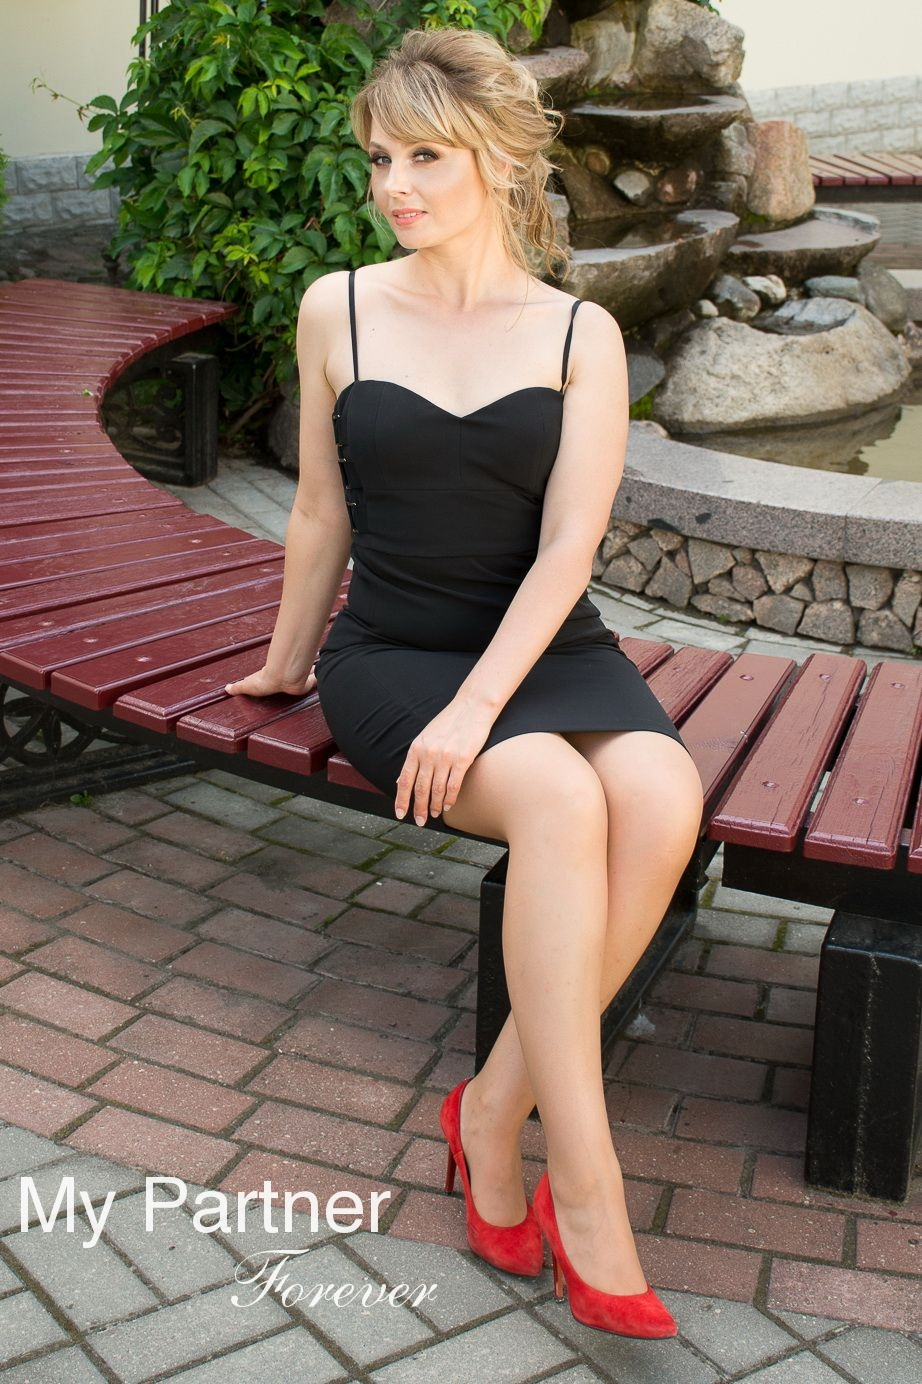 Datingsite to Meet Beautiful Belarusian Woman Olesya from Grodno, Belarus